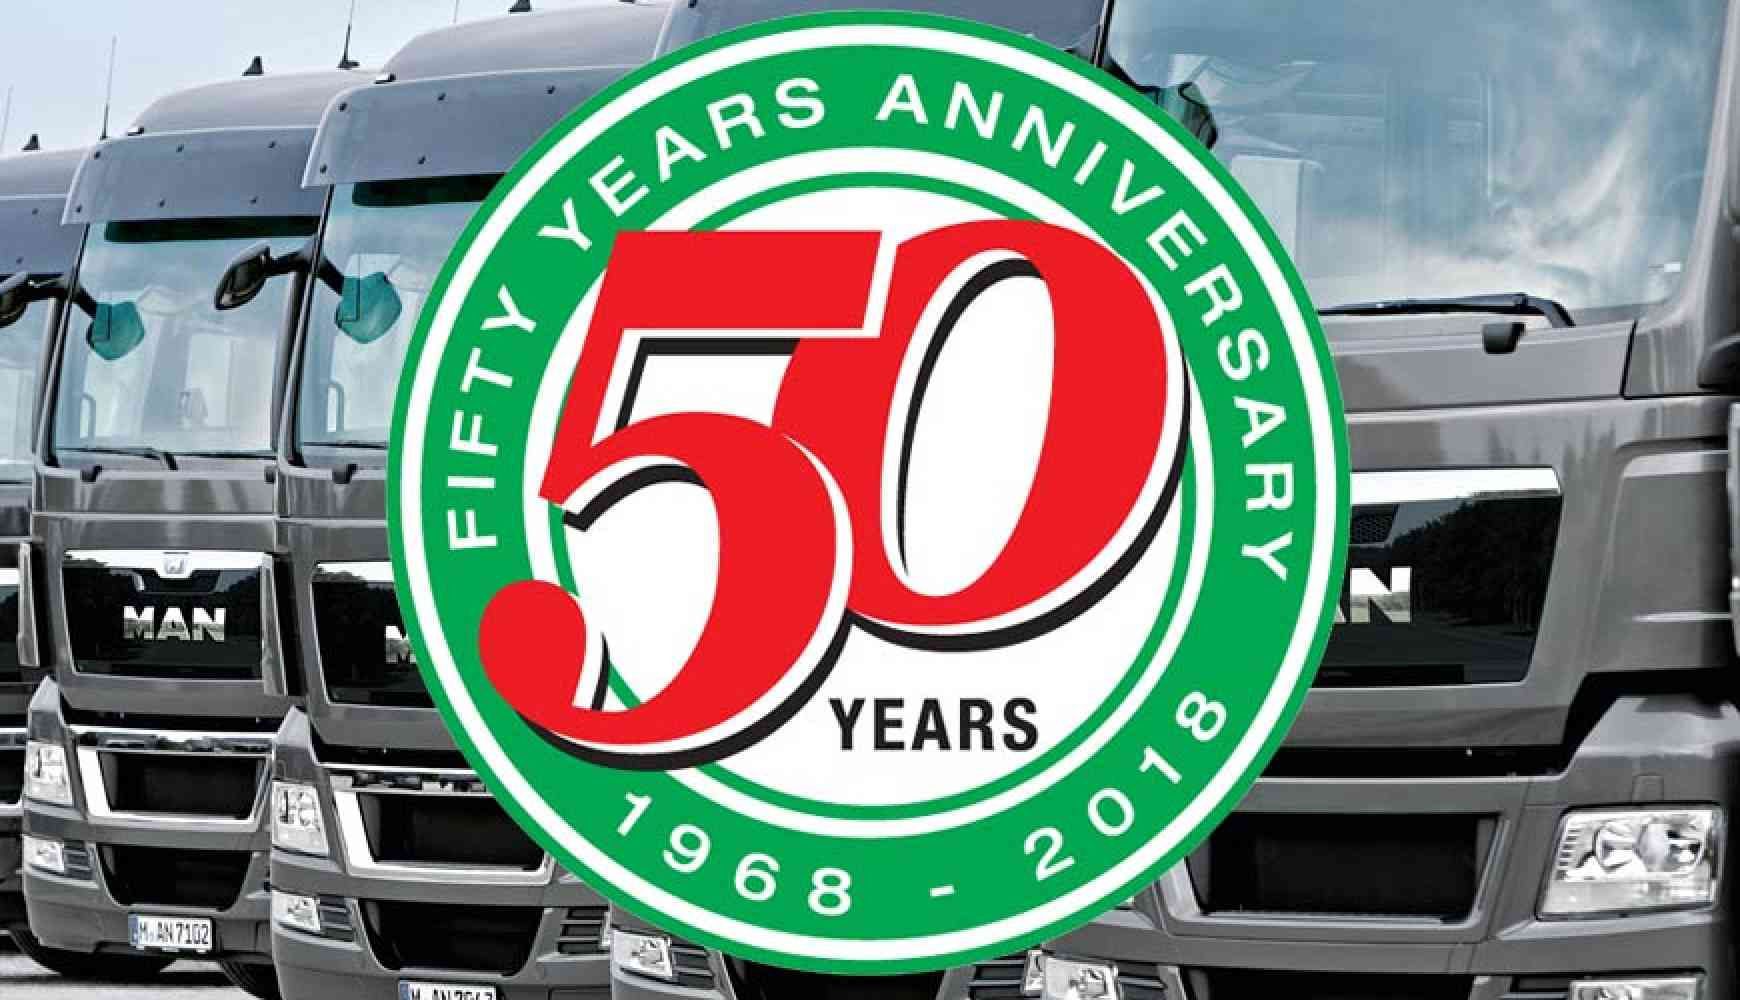 50 Years of looking after South Wales Transport Operations